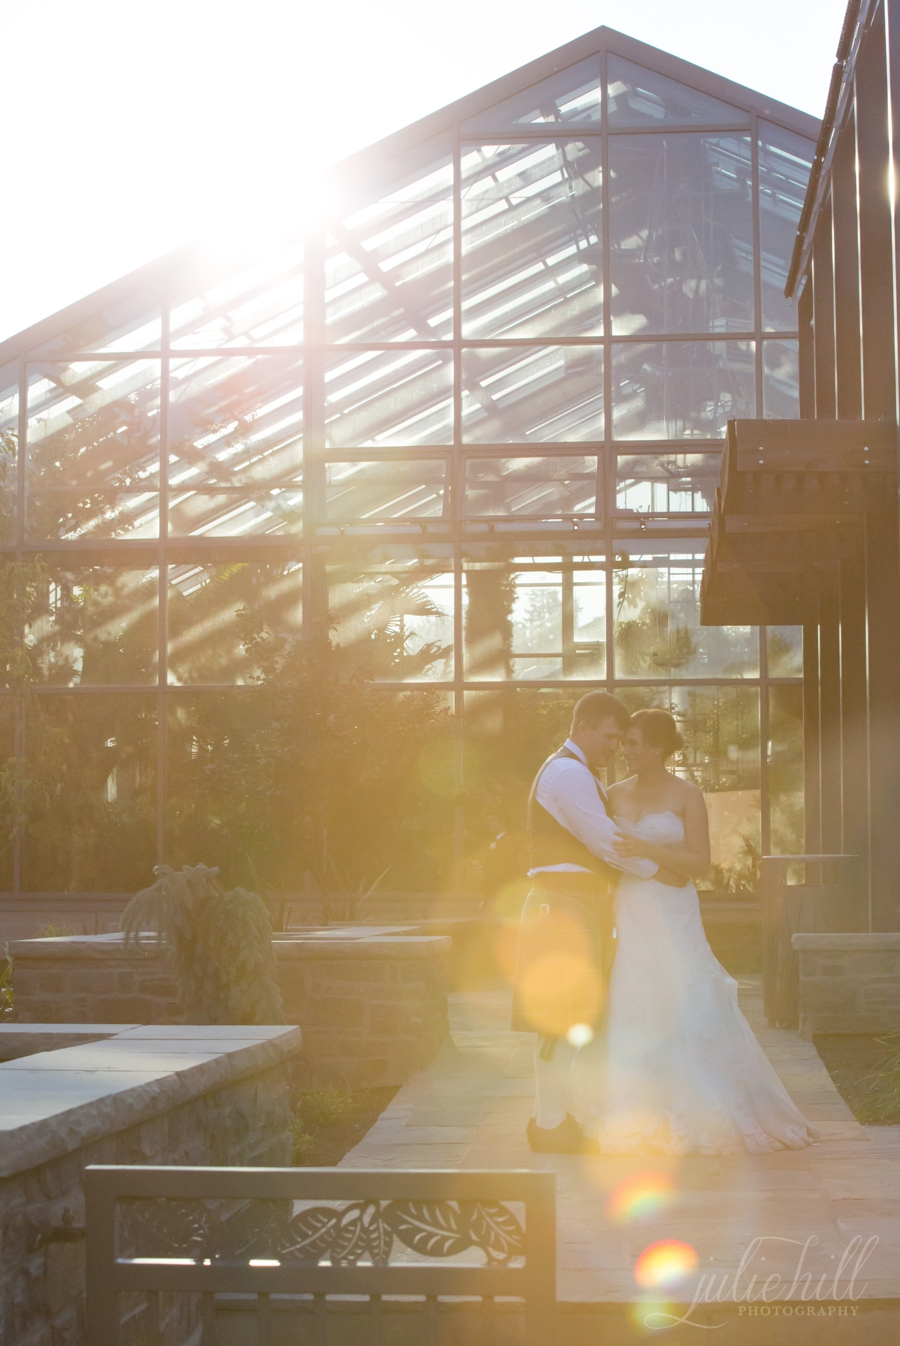 7-Calgary-Alberta-Zoo-Butterfly-Garden-Sunset-flare-Julie-Hill-Photography-Wedding-formal-photo01